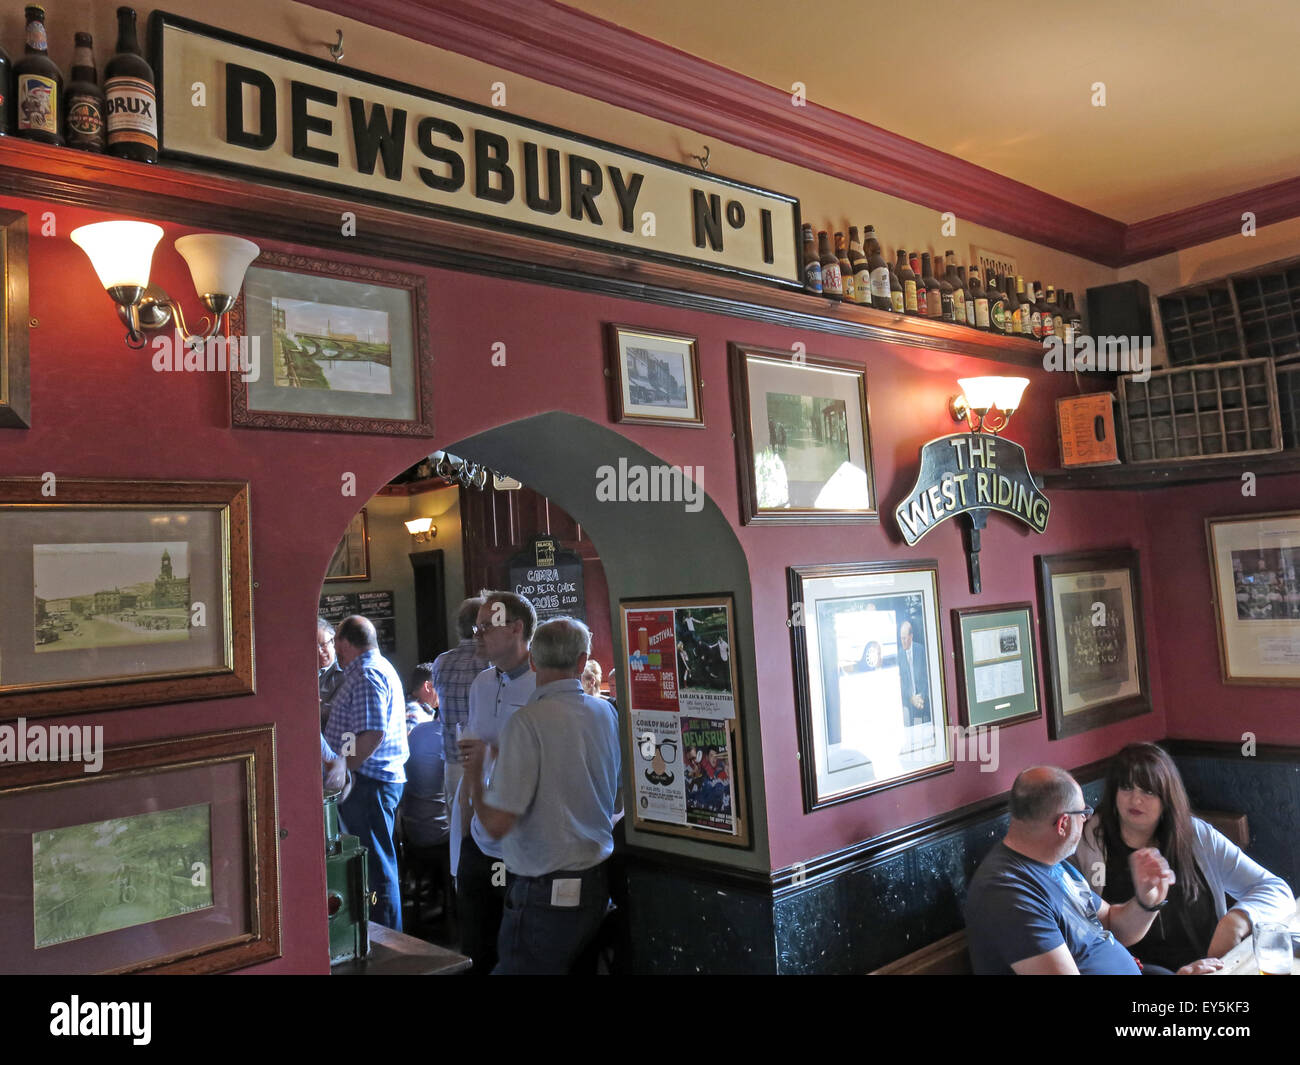 Real,Ale,realale,CAMRA,aletrail,WestRiding,bar,pubs,bars,drinking,drinkers,trans,pennine,transpennine,train,trains,trail,train,ales,platform,buffet,cafe,sign,Stalybridge,public,inside,interior,room,Ale Train,Ale trail,Dewsbury No 1,No 1,GoTonySmith,Buy Pictures of,Buy Images Of